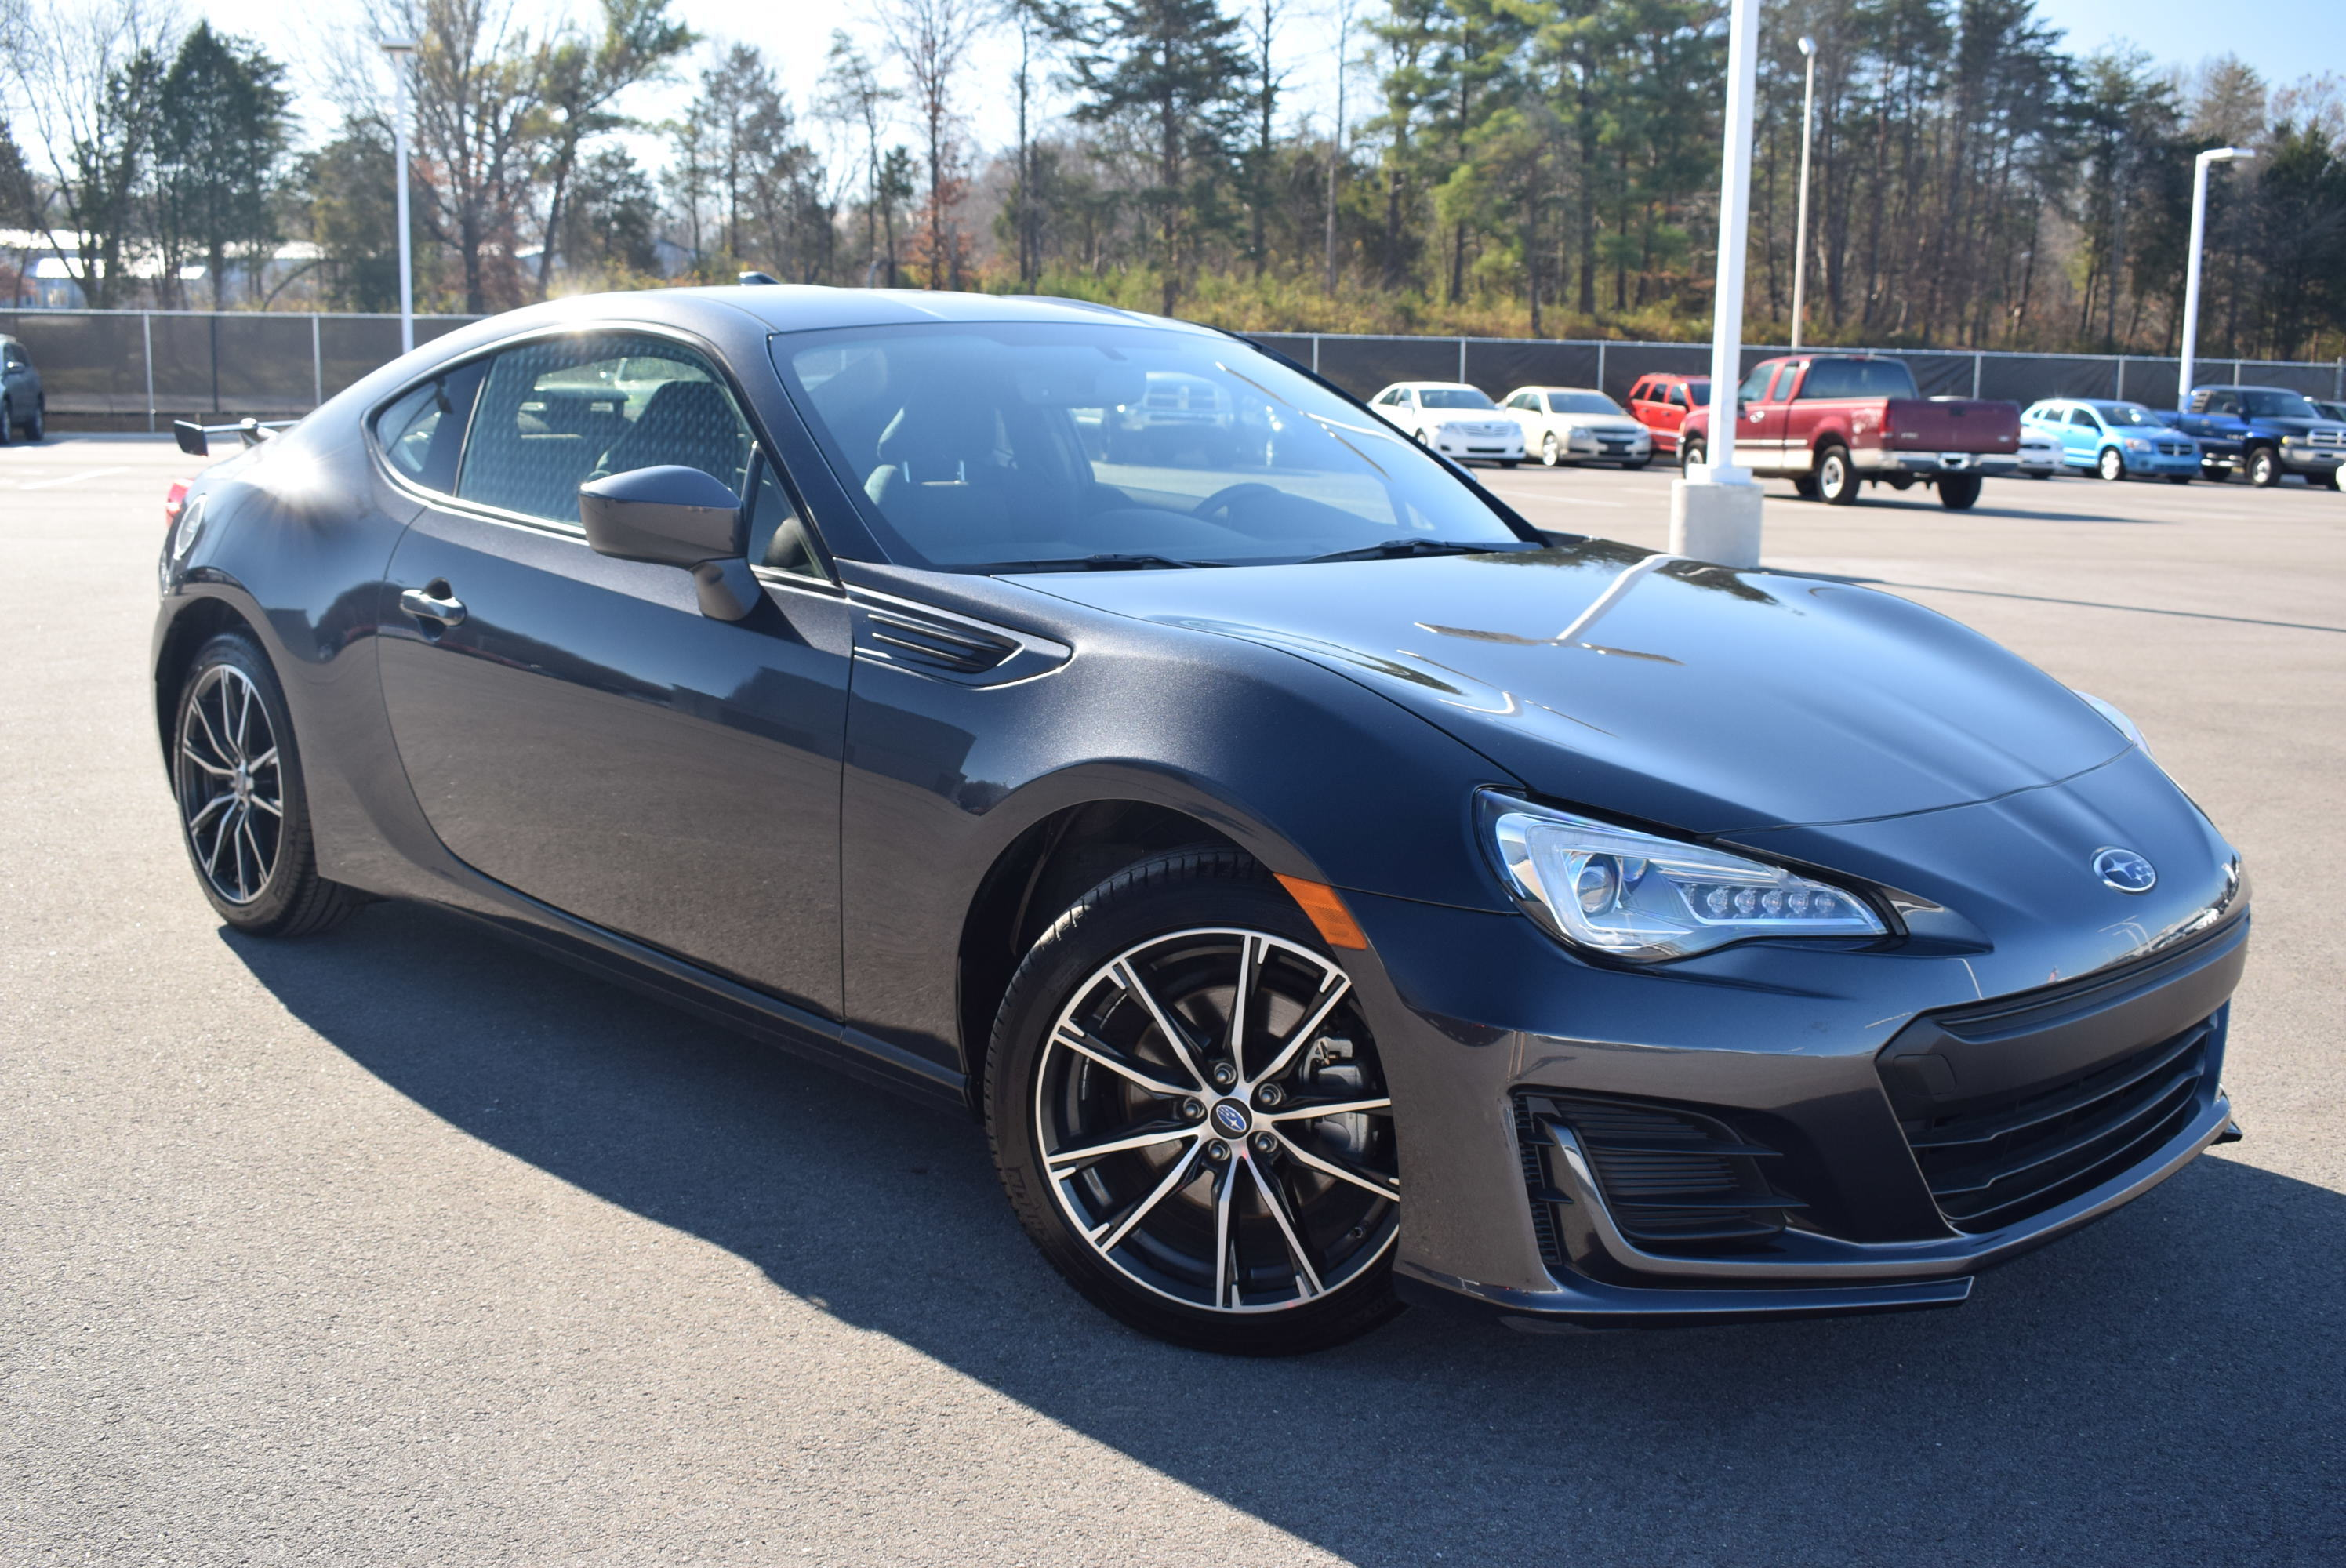 Used Brz For Sale >> Used Subaru Brz For Sale U S News World Report